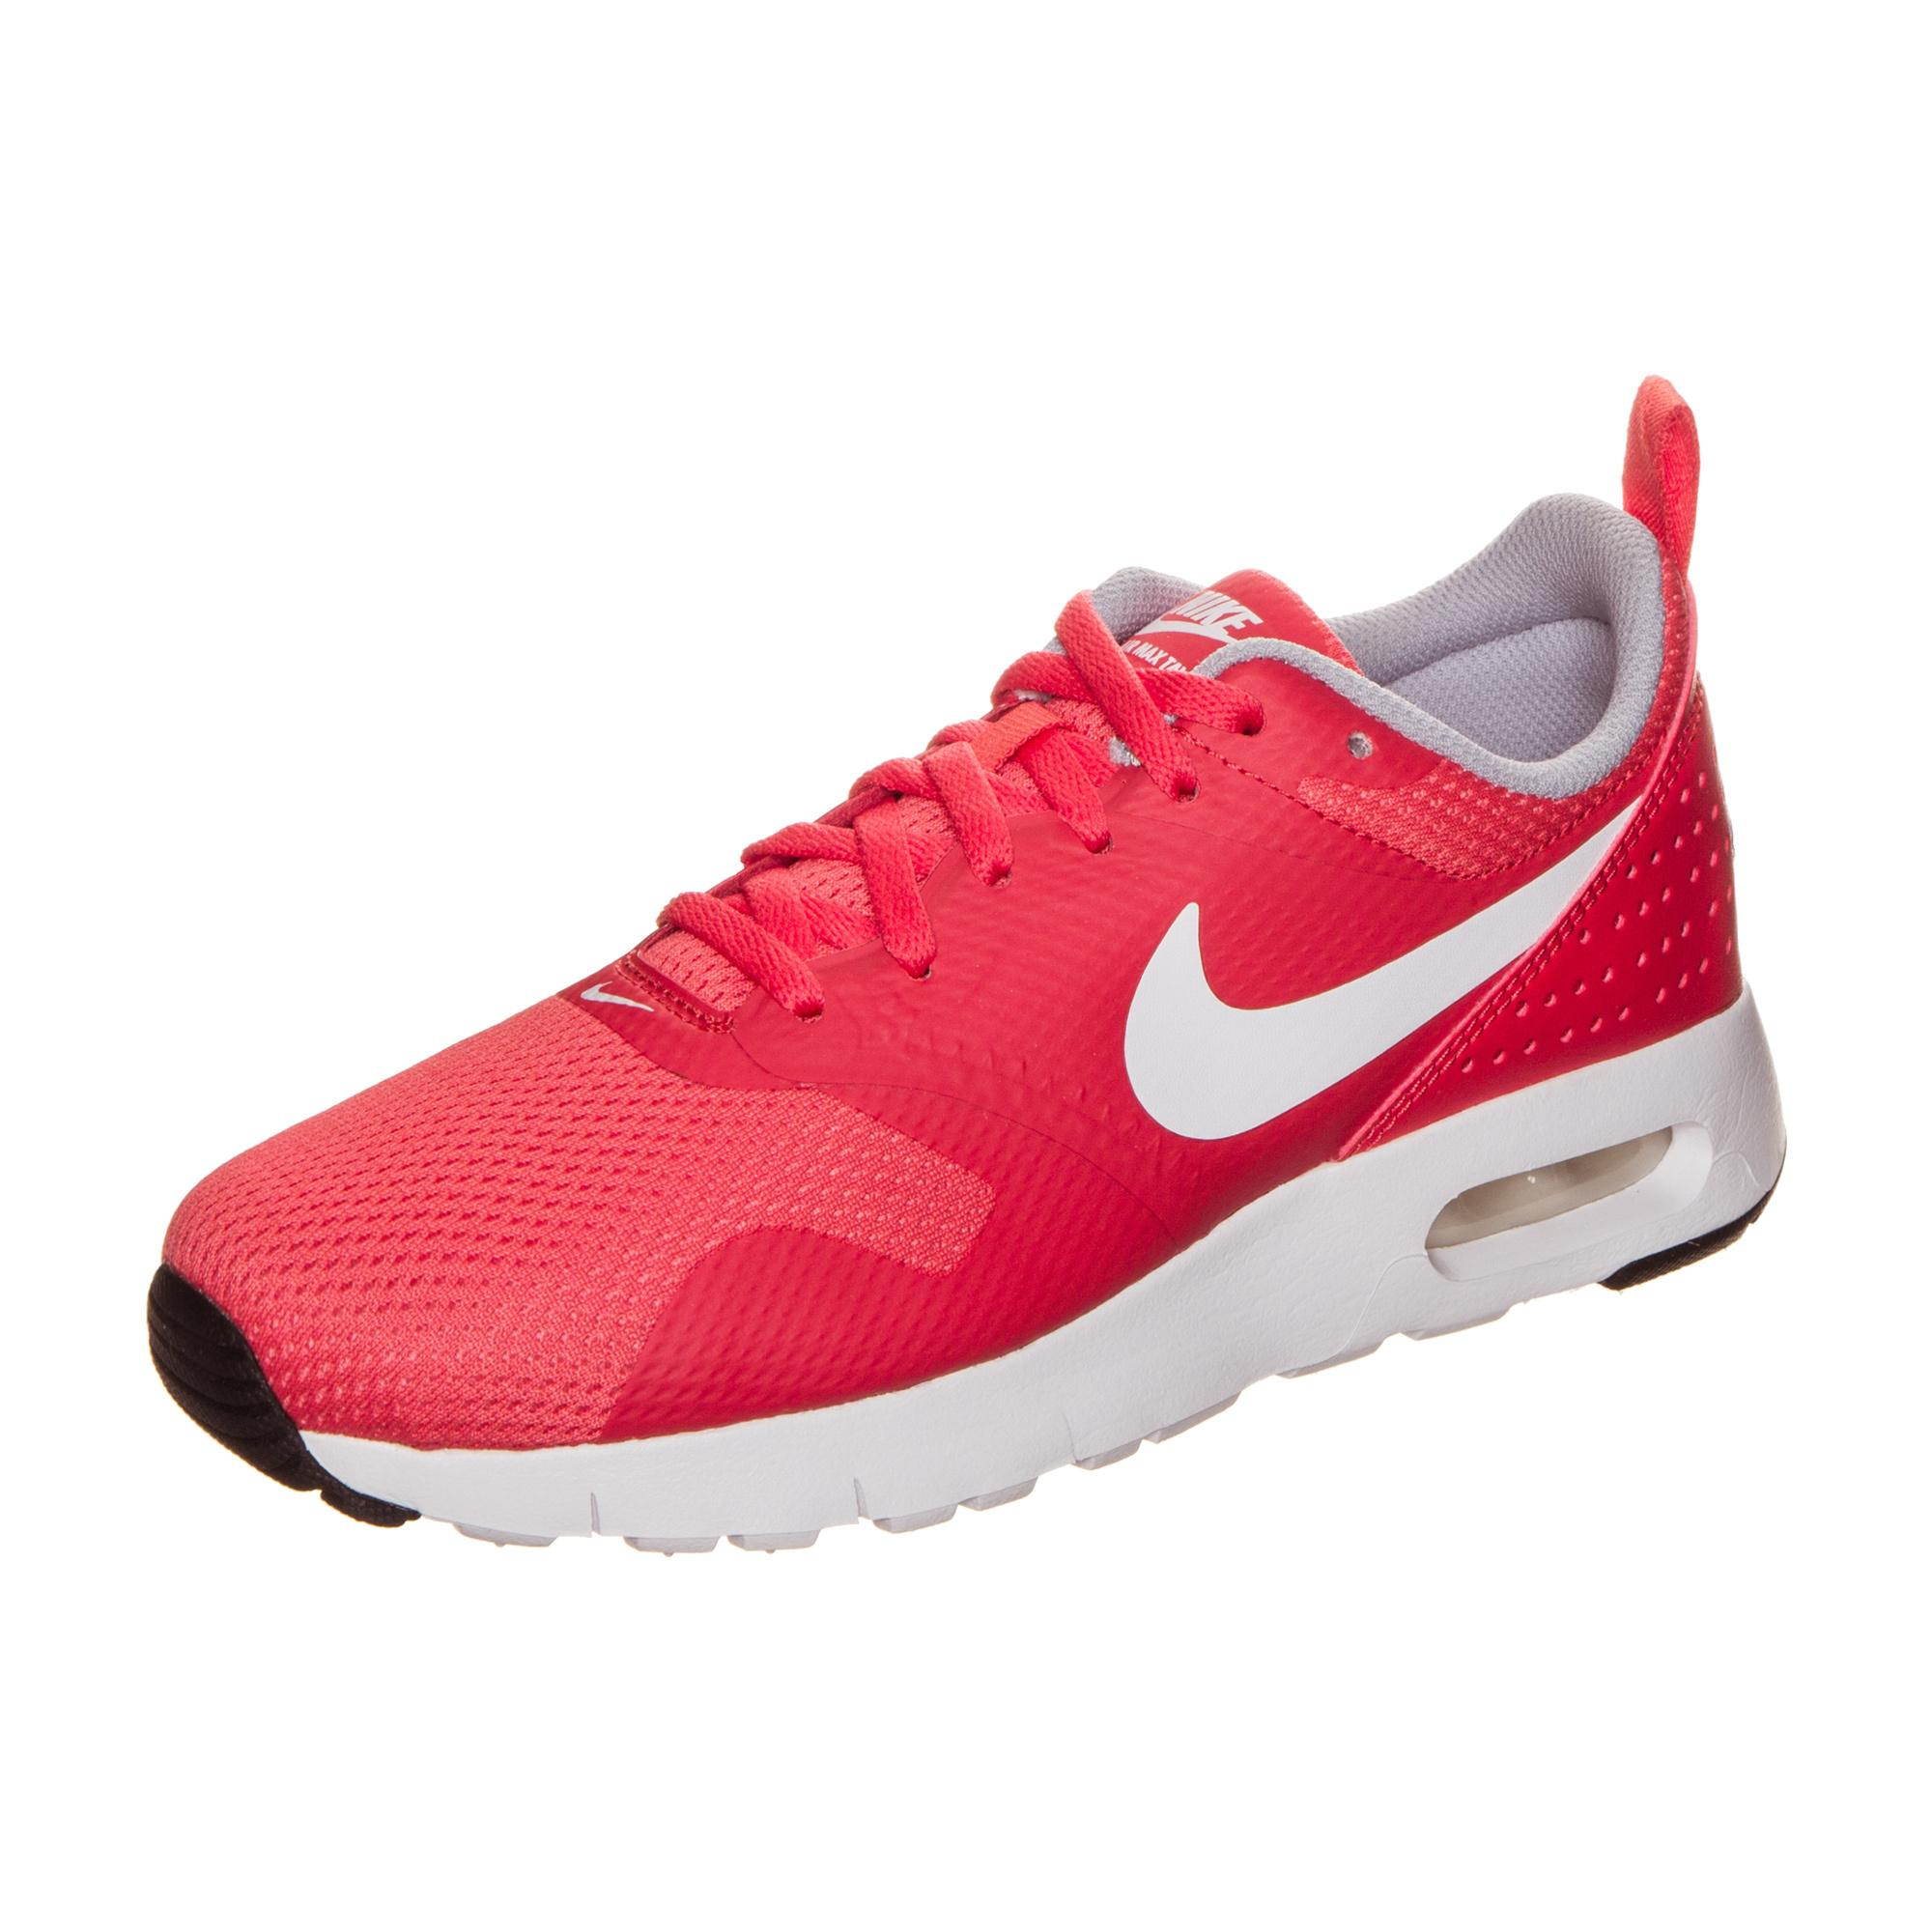 Nike Air Max Tavas Rot Größe 43 not in